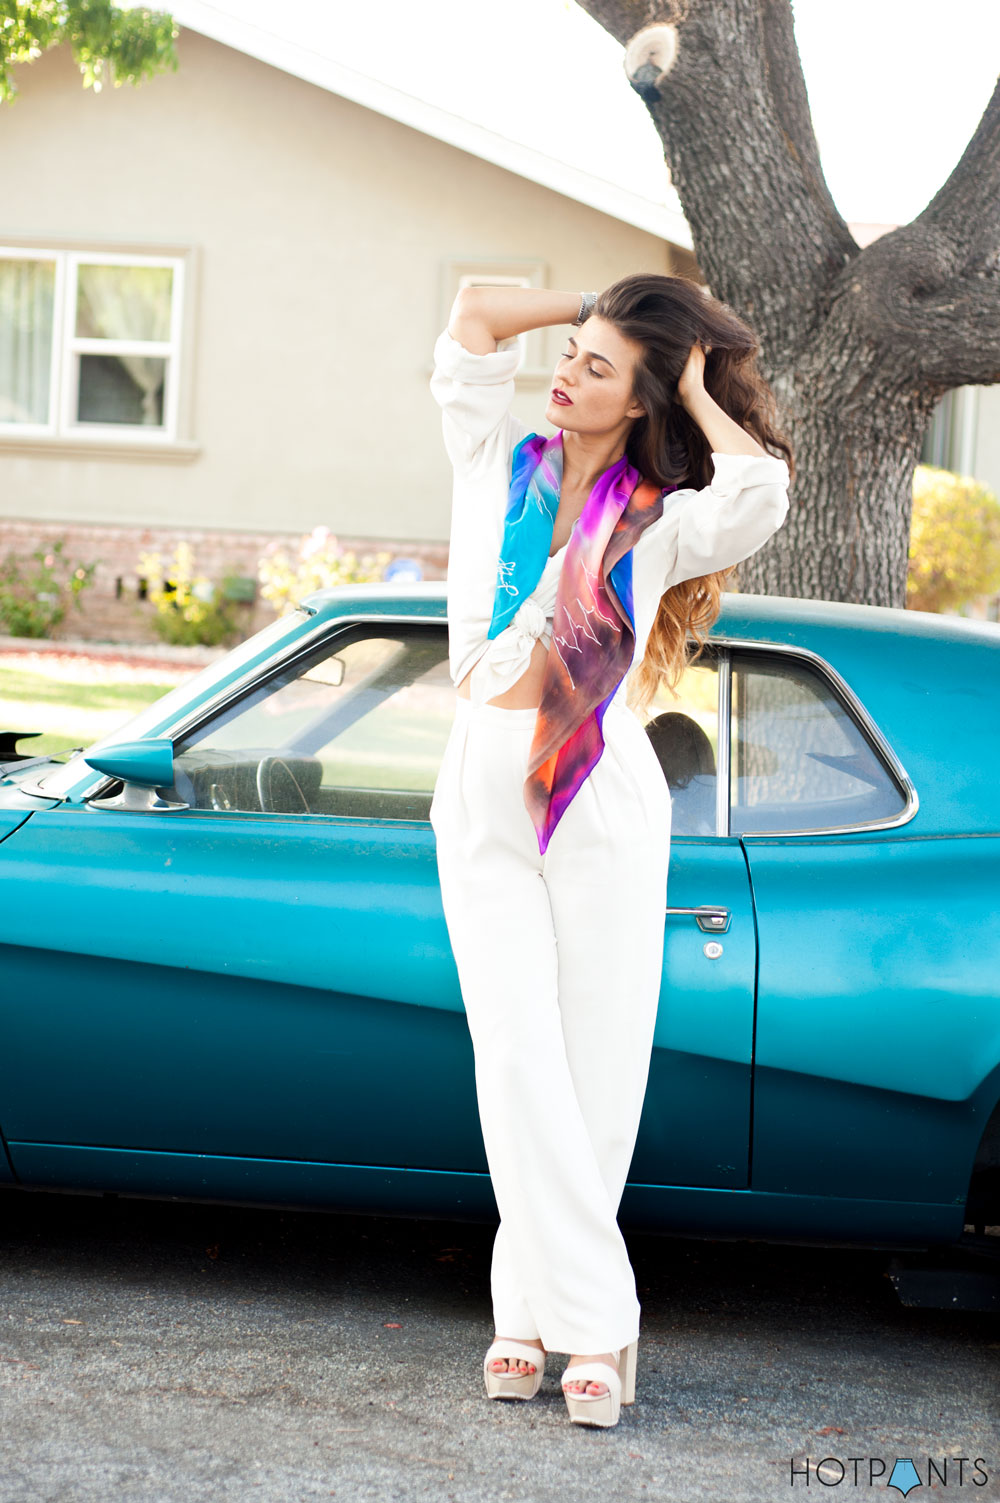 Girl Woman San Jose California Standing With In Front Of Vintage Mercury Cougar